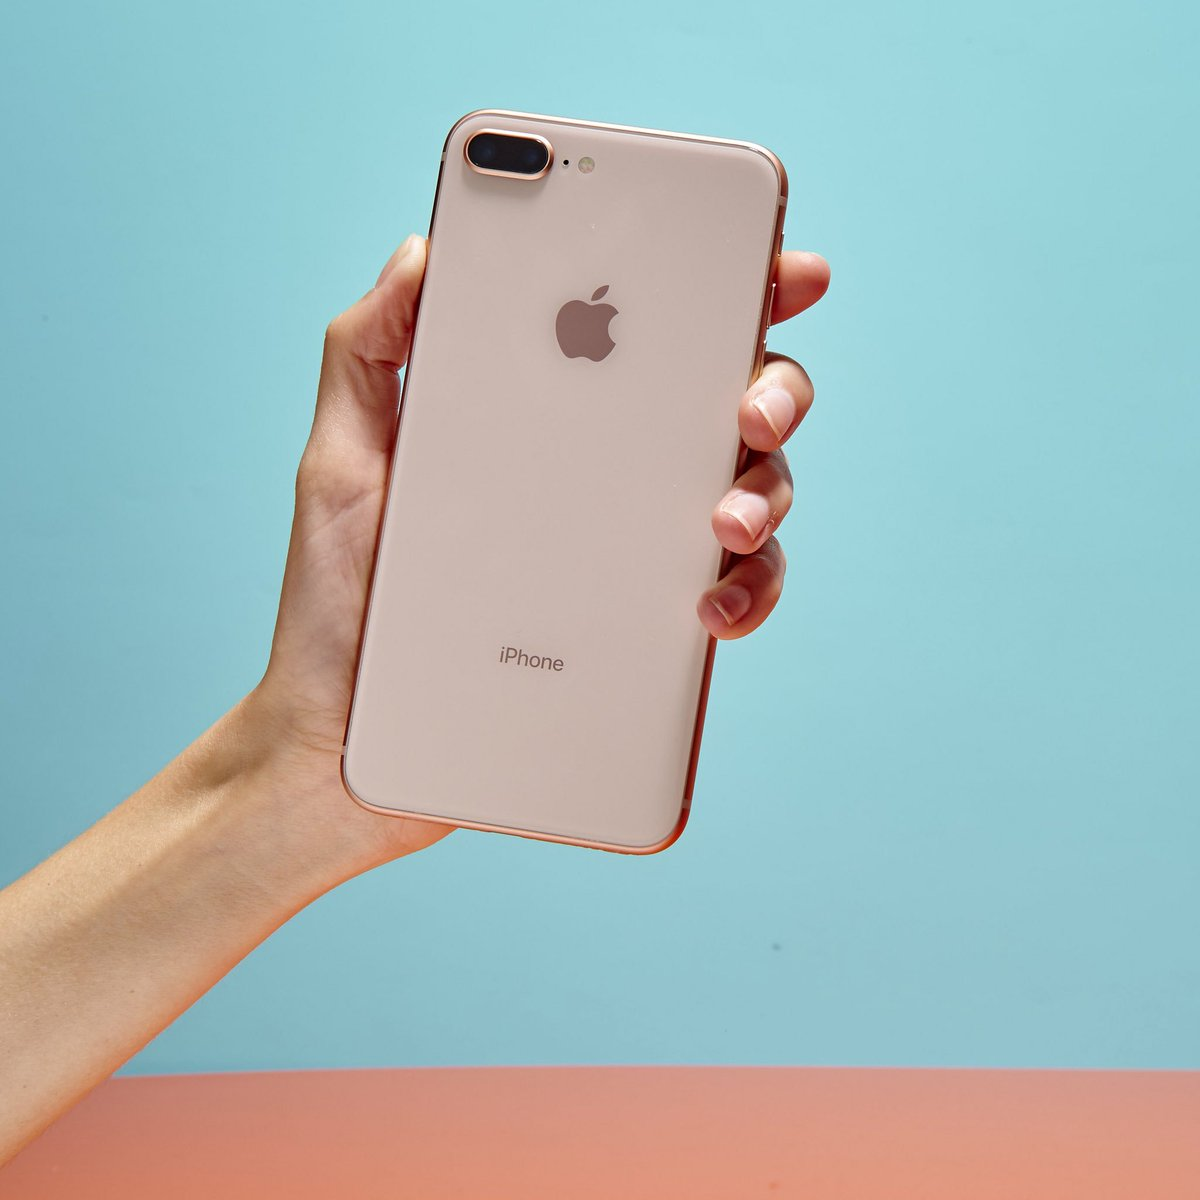 #iPhone8 Review: Not the Upgrade You're Looking for by @geoffreyfowler @WSJ  https://www. wsj.com/articles/iphon e-8-review-not-the-upgrade-youre-looking-for-1505818800 &nbsp; …  #TechNews #iPhone<br>http://pic.twitter.com/OdF8rgy6BF